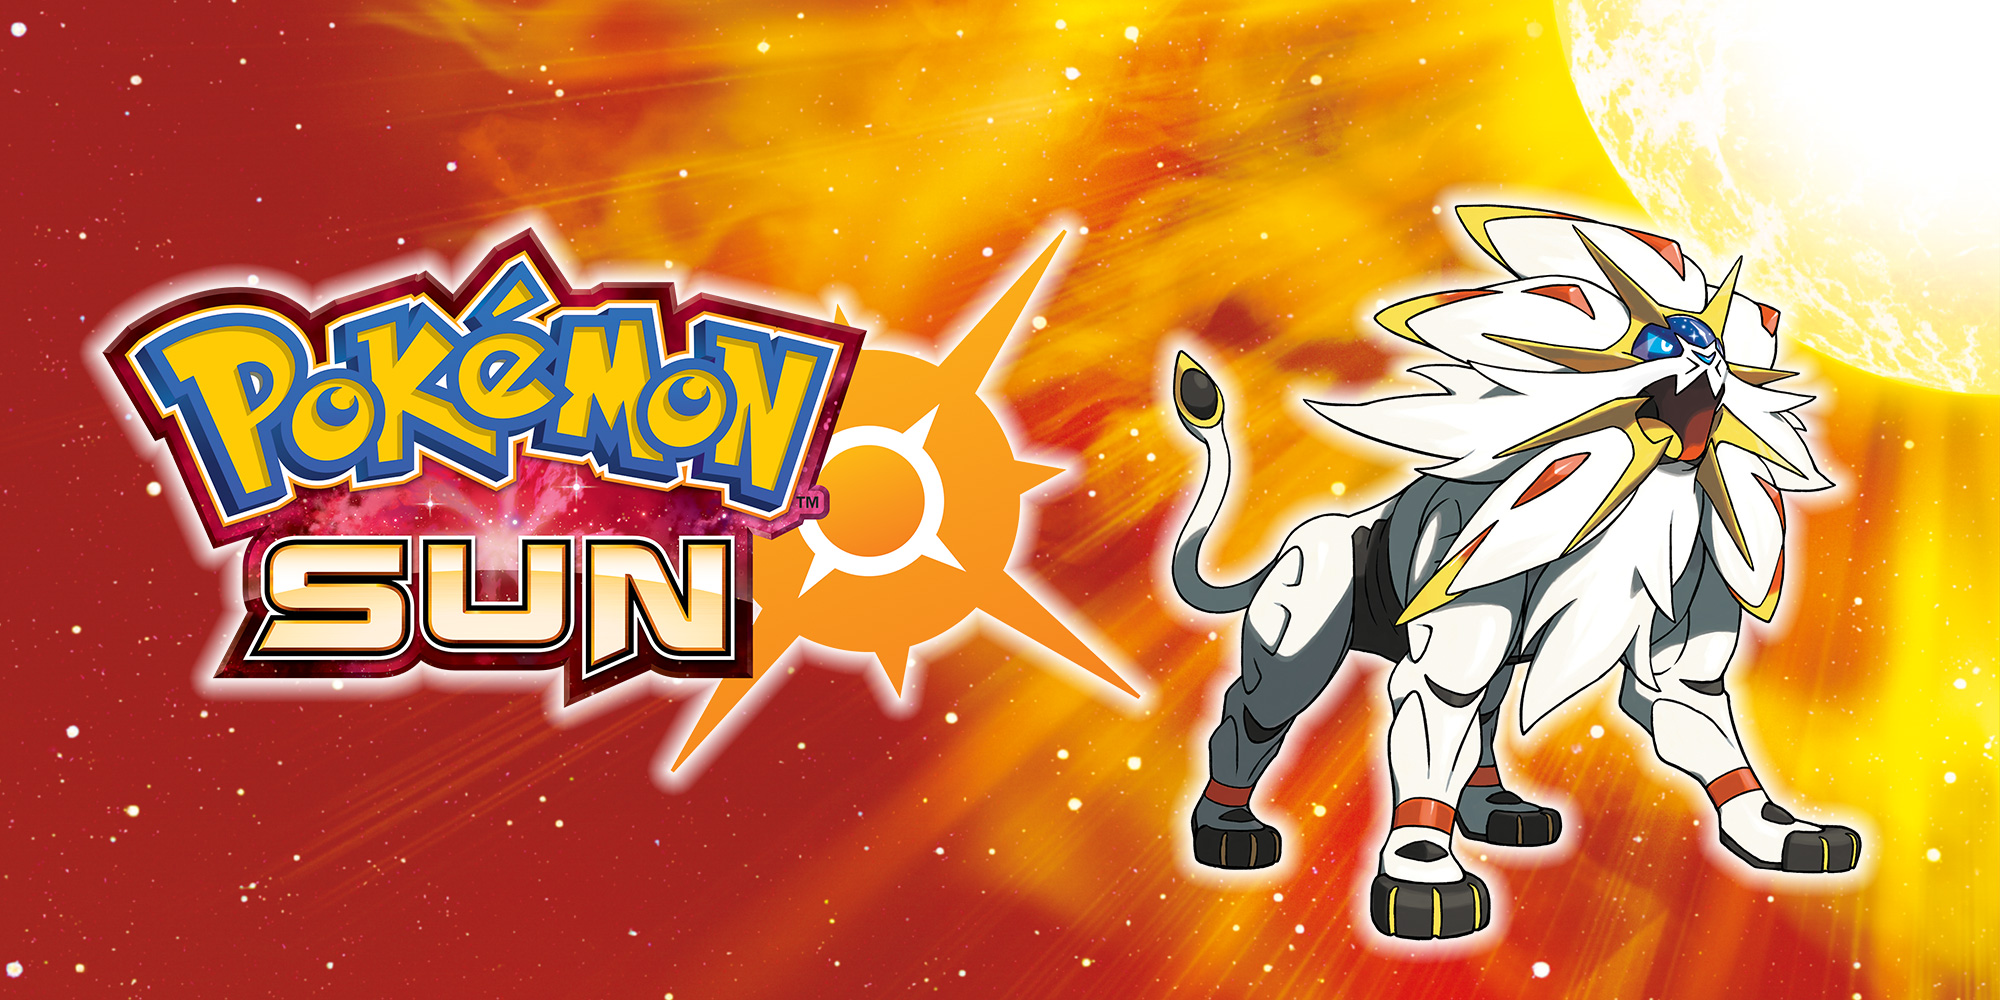 https://i2.wp.com/cdn02.nintendo-europe.com/media/images/10_share_images/games_15/nintendo_3ds_25/H2x1_3DS_PokemonSun_enGB.jpg